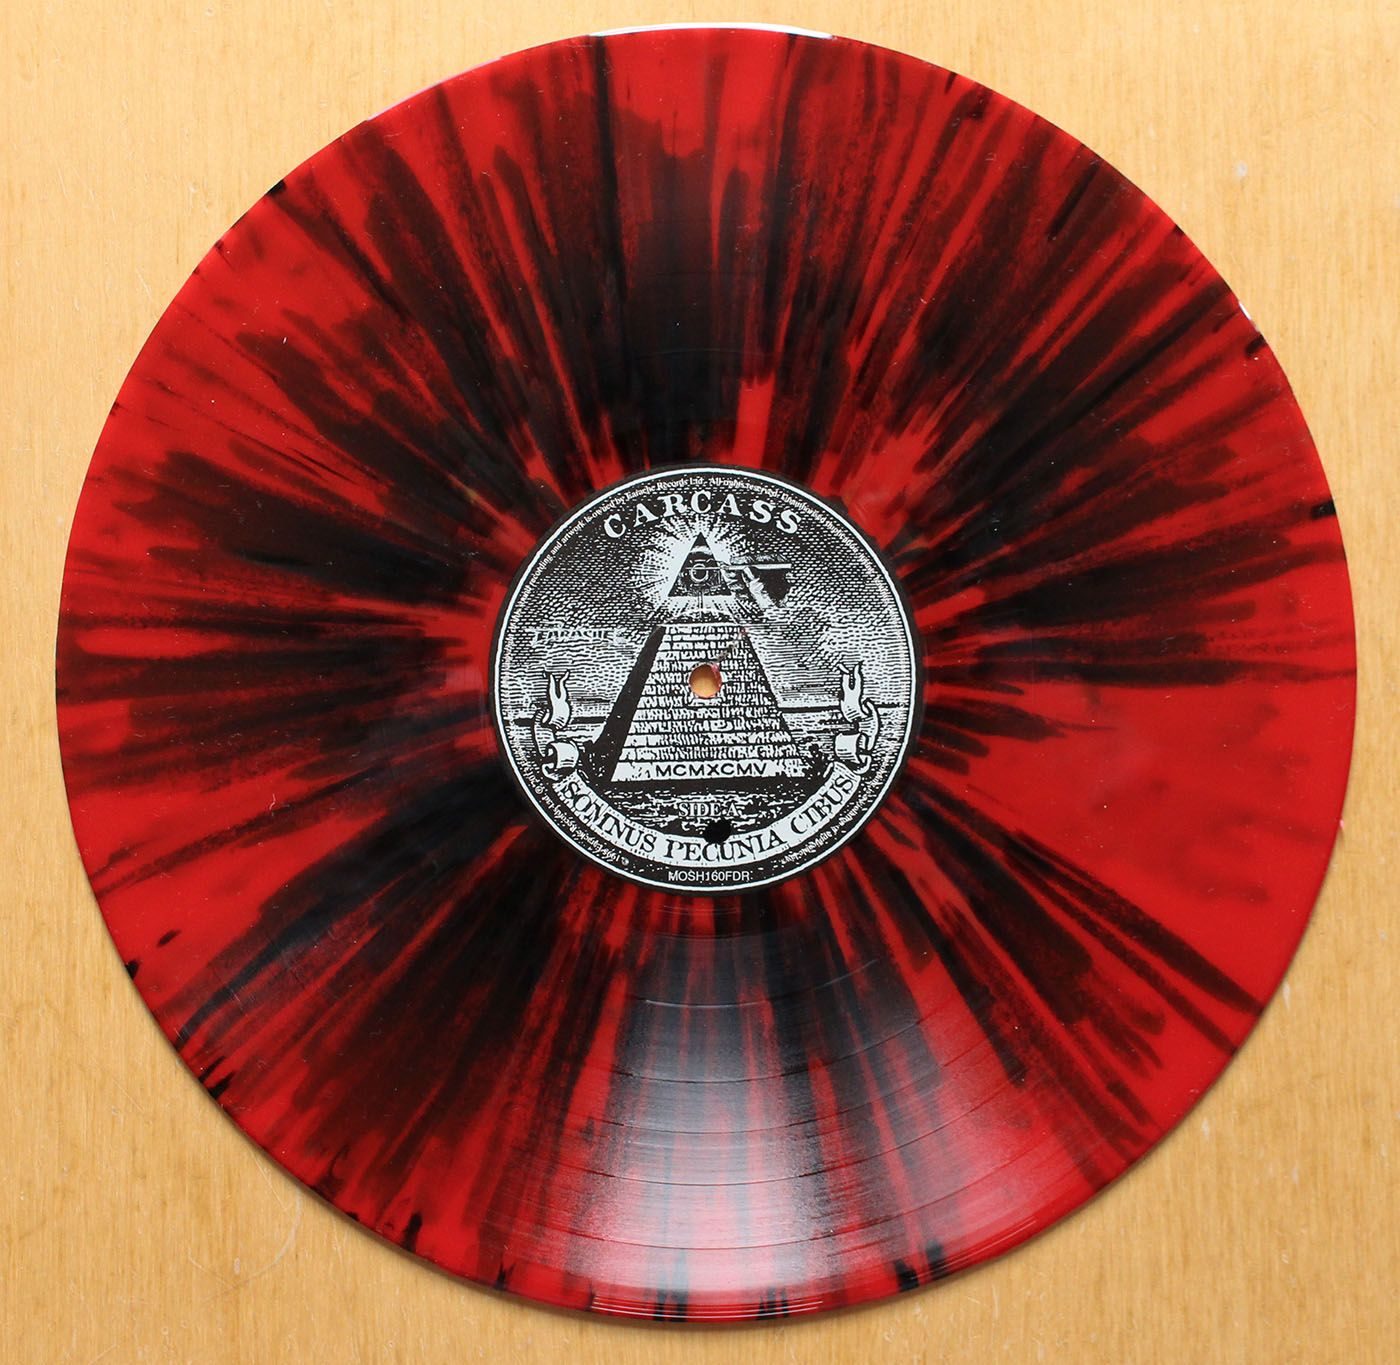 Carcass Swansong 2013 Fdr Reissue Red Amp Black